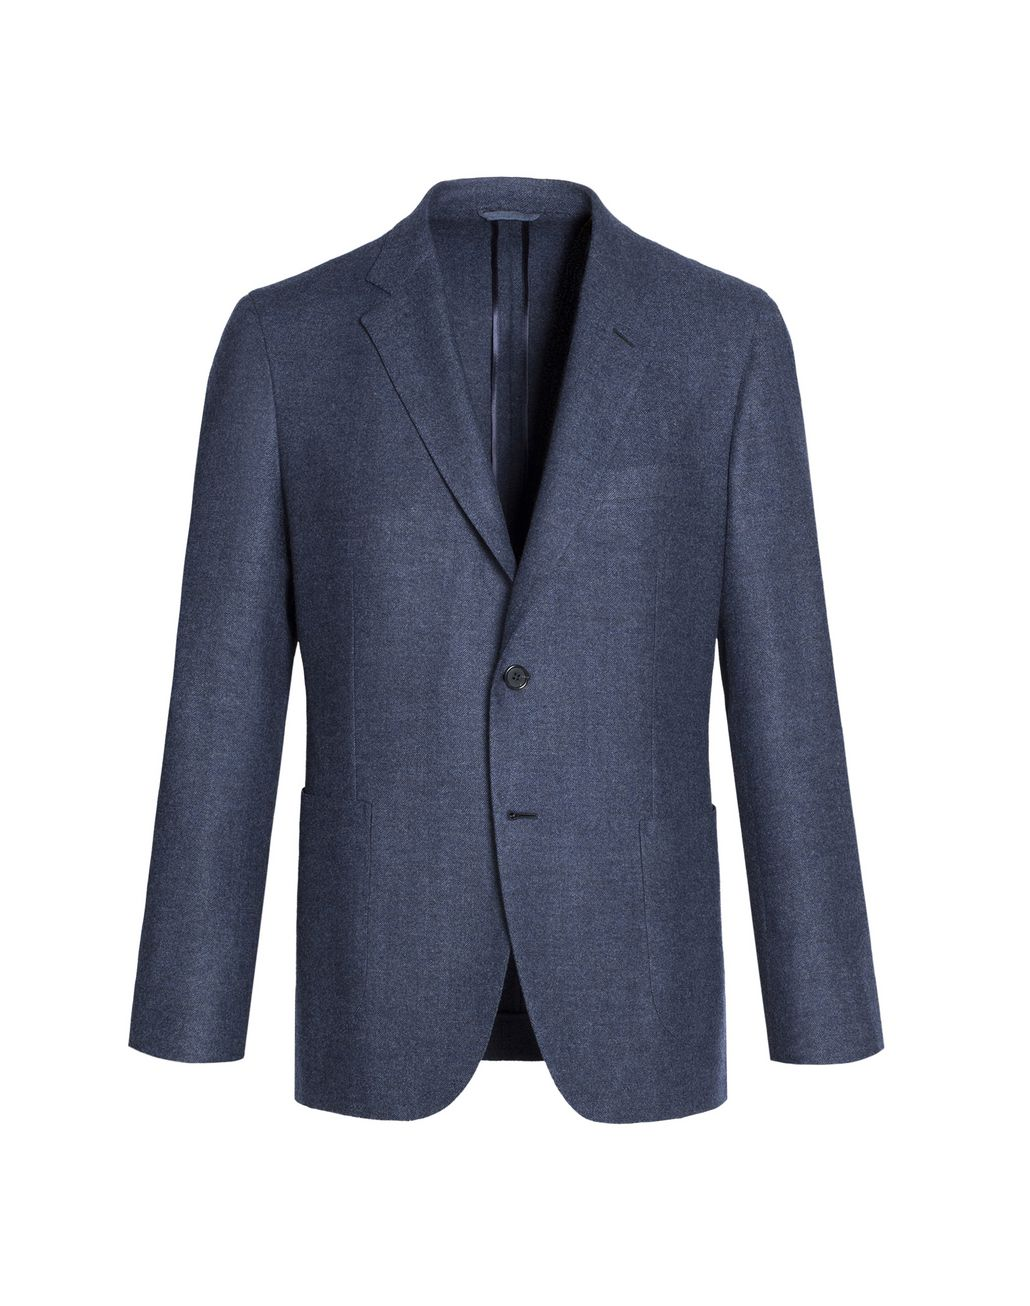 BRIONI Denim Blue Herringbone Plume Jacket Jackets U f